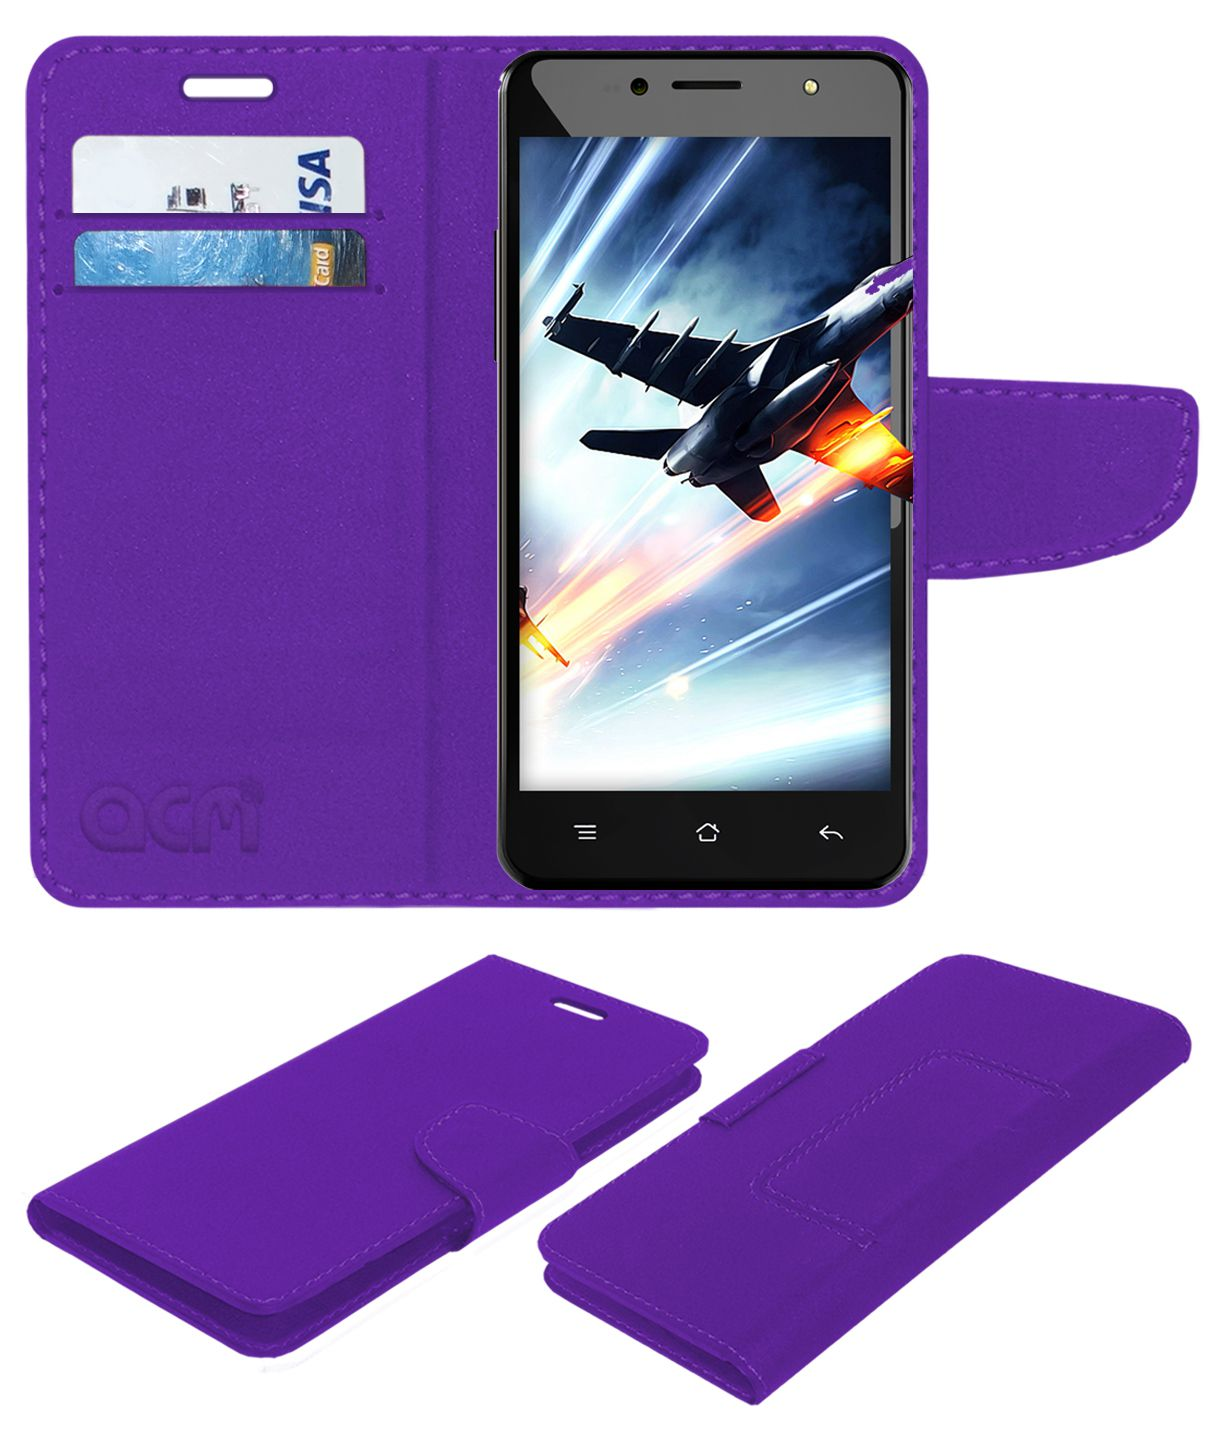 iberry Auxus Stunner Flip Cover by ACM - Purple